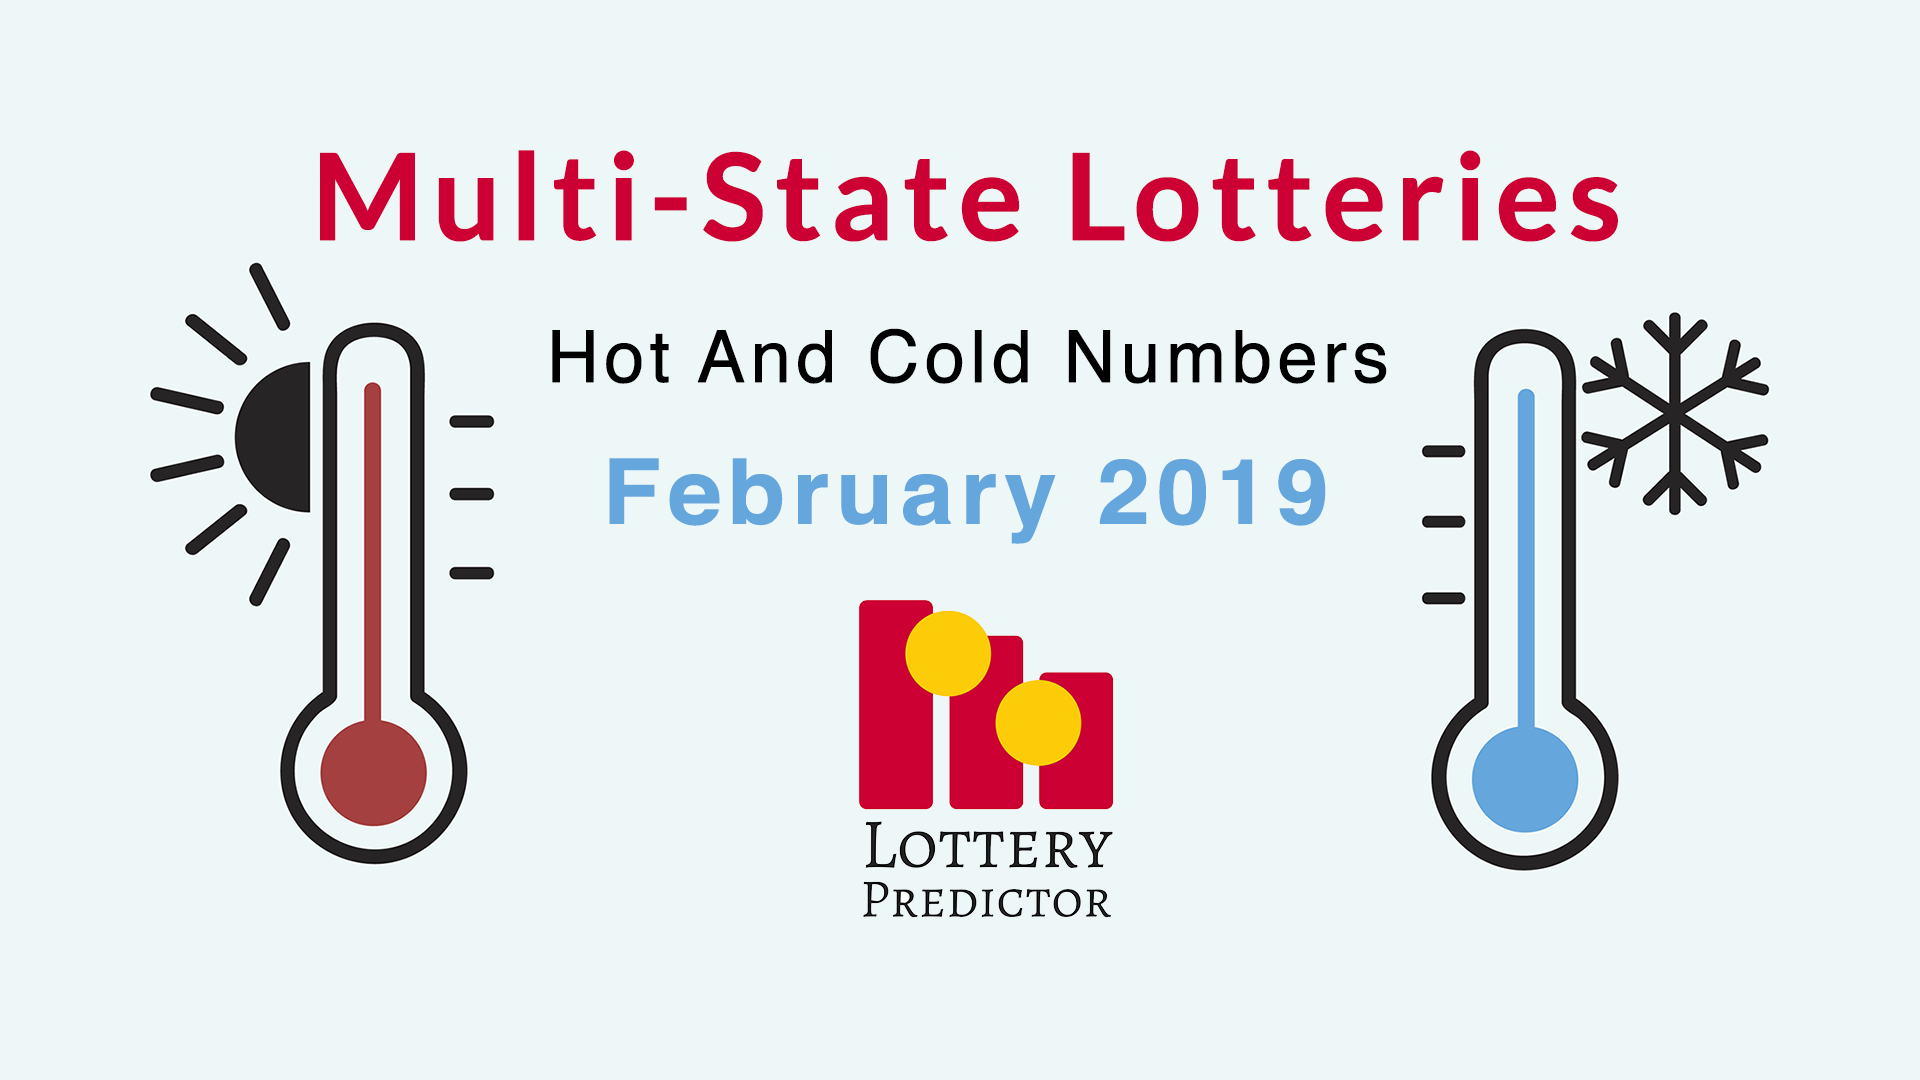 Multi-State Lottery Hot And Cold Numbers For February 2019